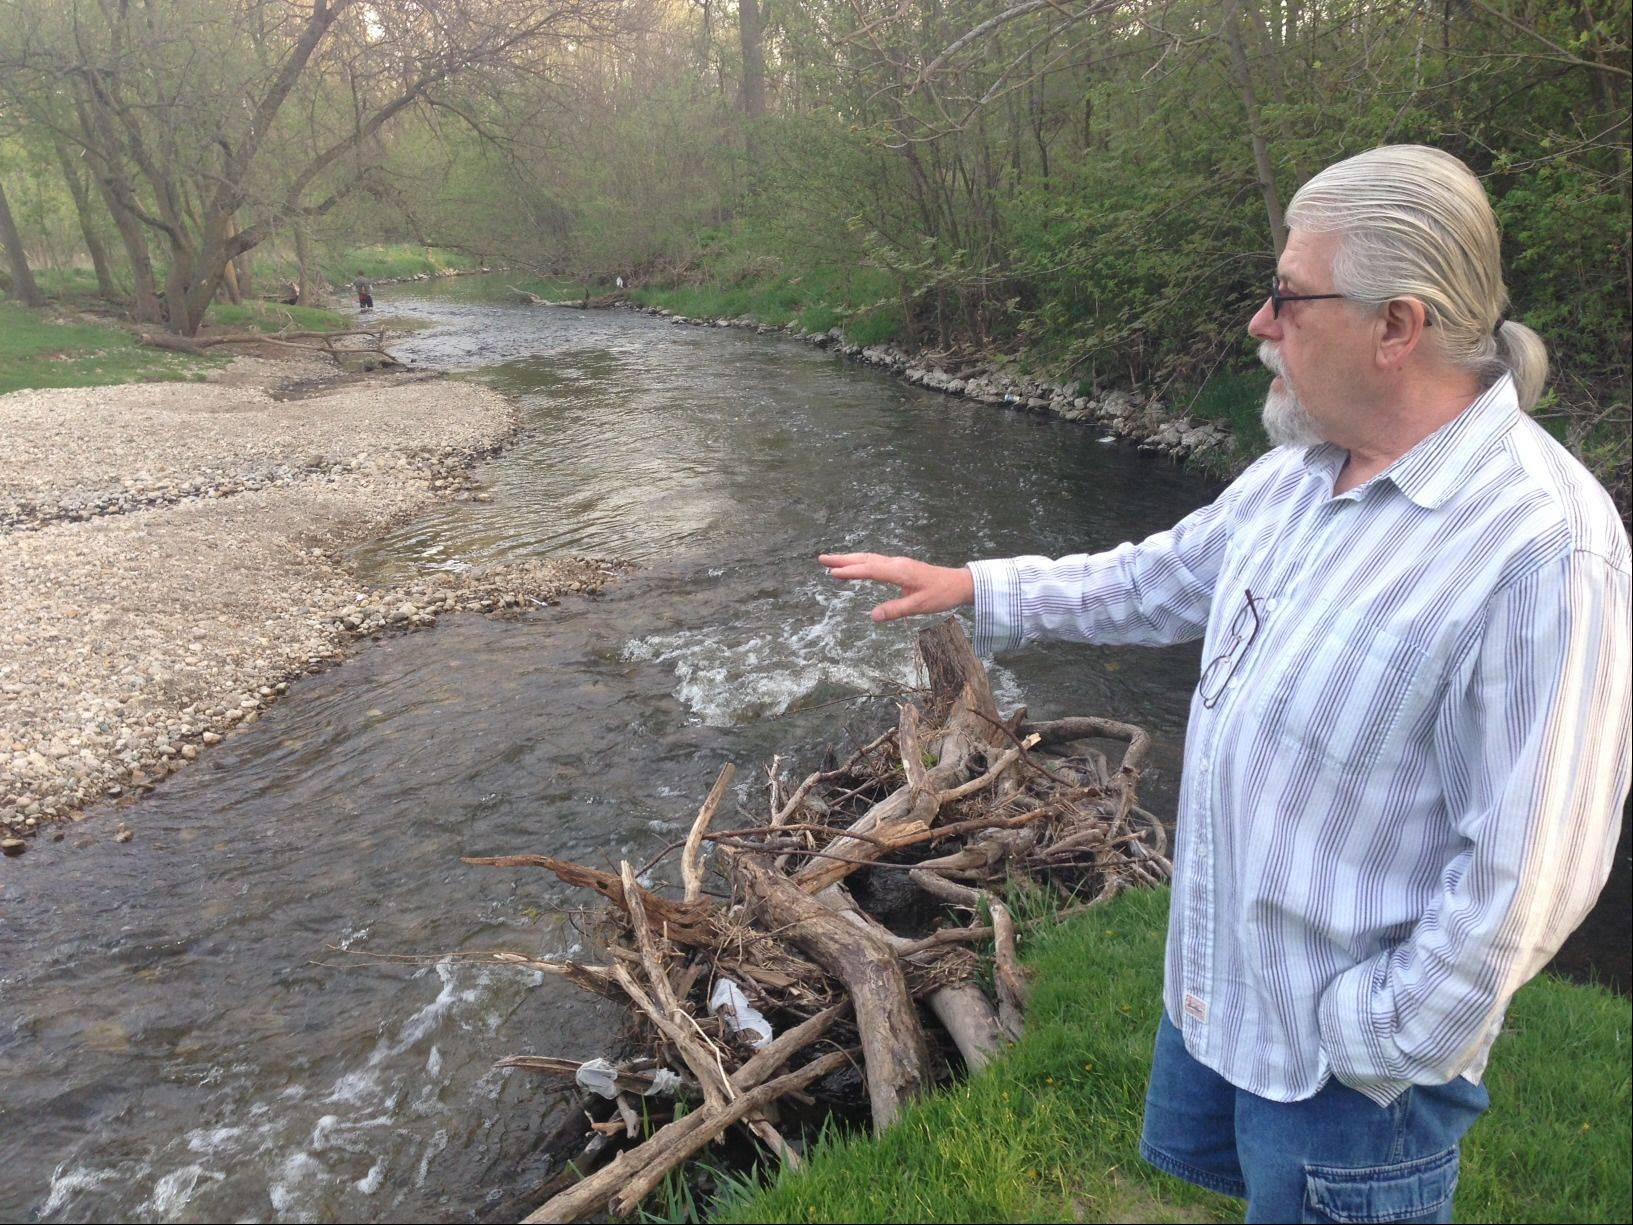 Elgin resident Richard Carlson points to erosion and accumulation of rocks in the area where Poplar and Willow creeks meet. Last month's heavy storms accelerated the damage. Carlson attended a meeting of the Elgin chapter of the Izaak Walton League of America on Tuesday to talk about how to stabilize the banks of the creek.